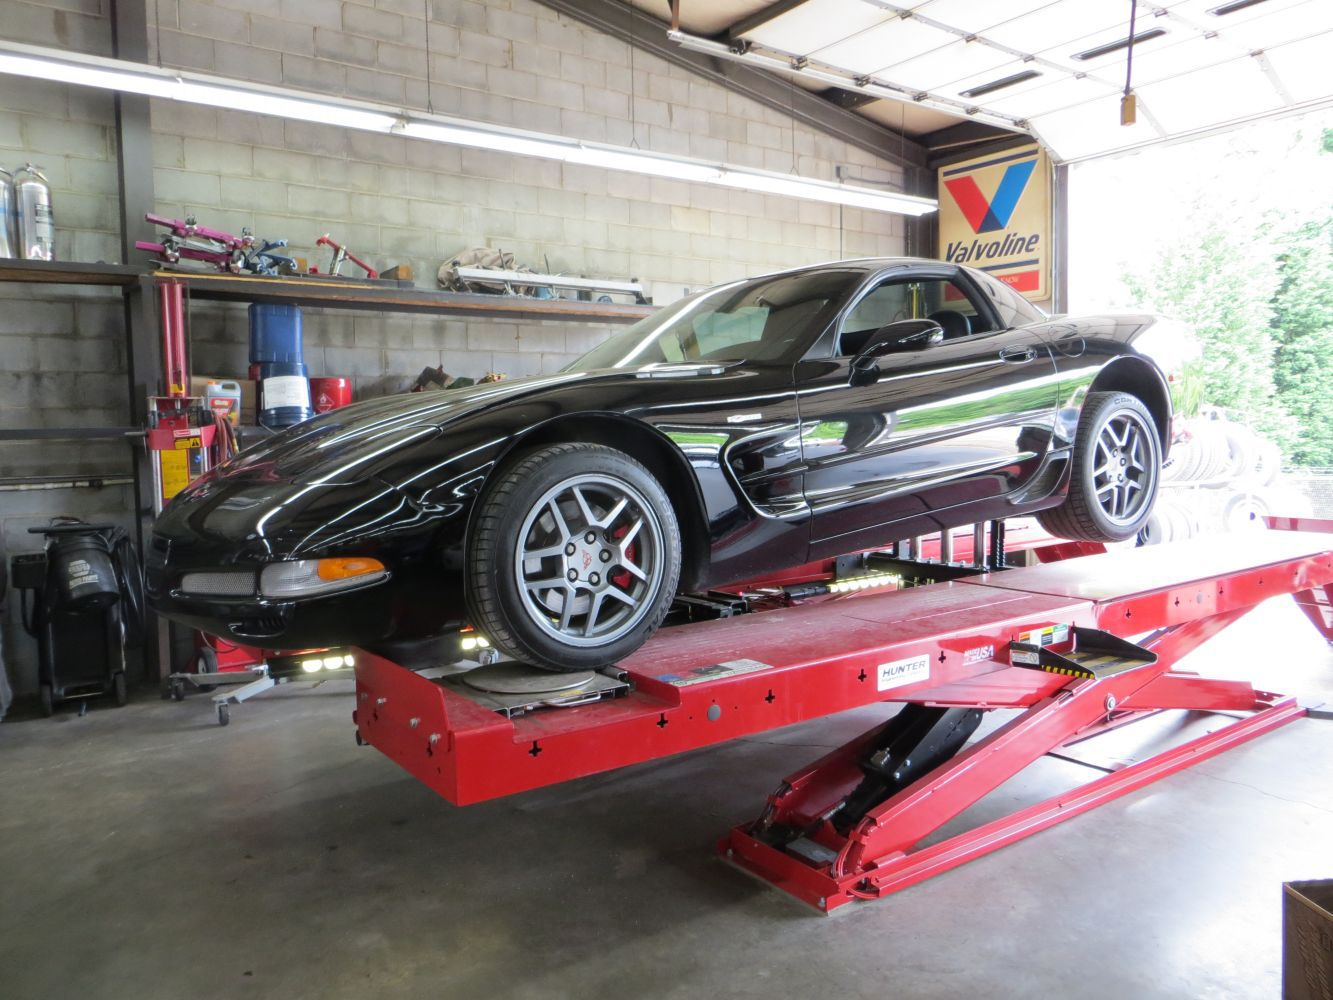 Car repairing service by professionals in High Point, NC